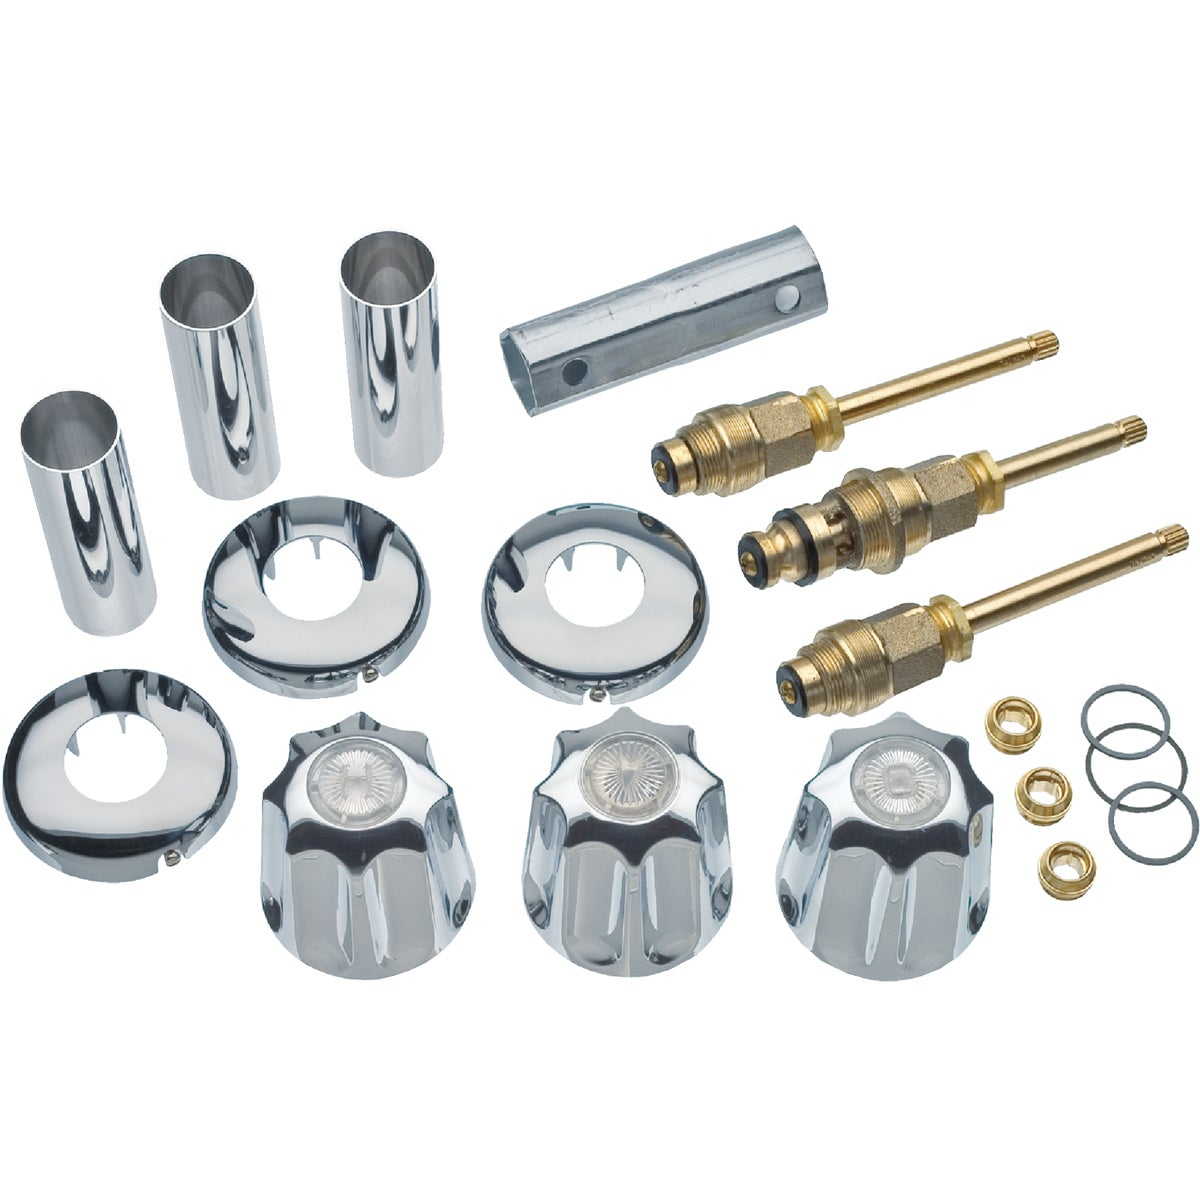 Faucet & Sink Repair Parts